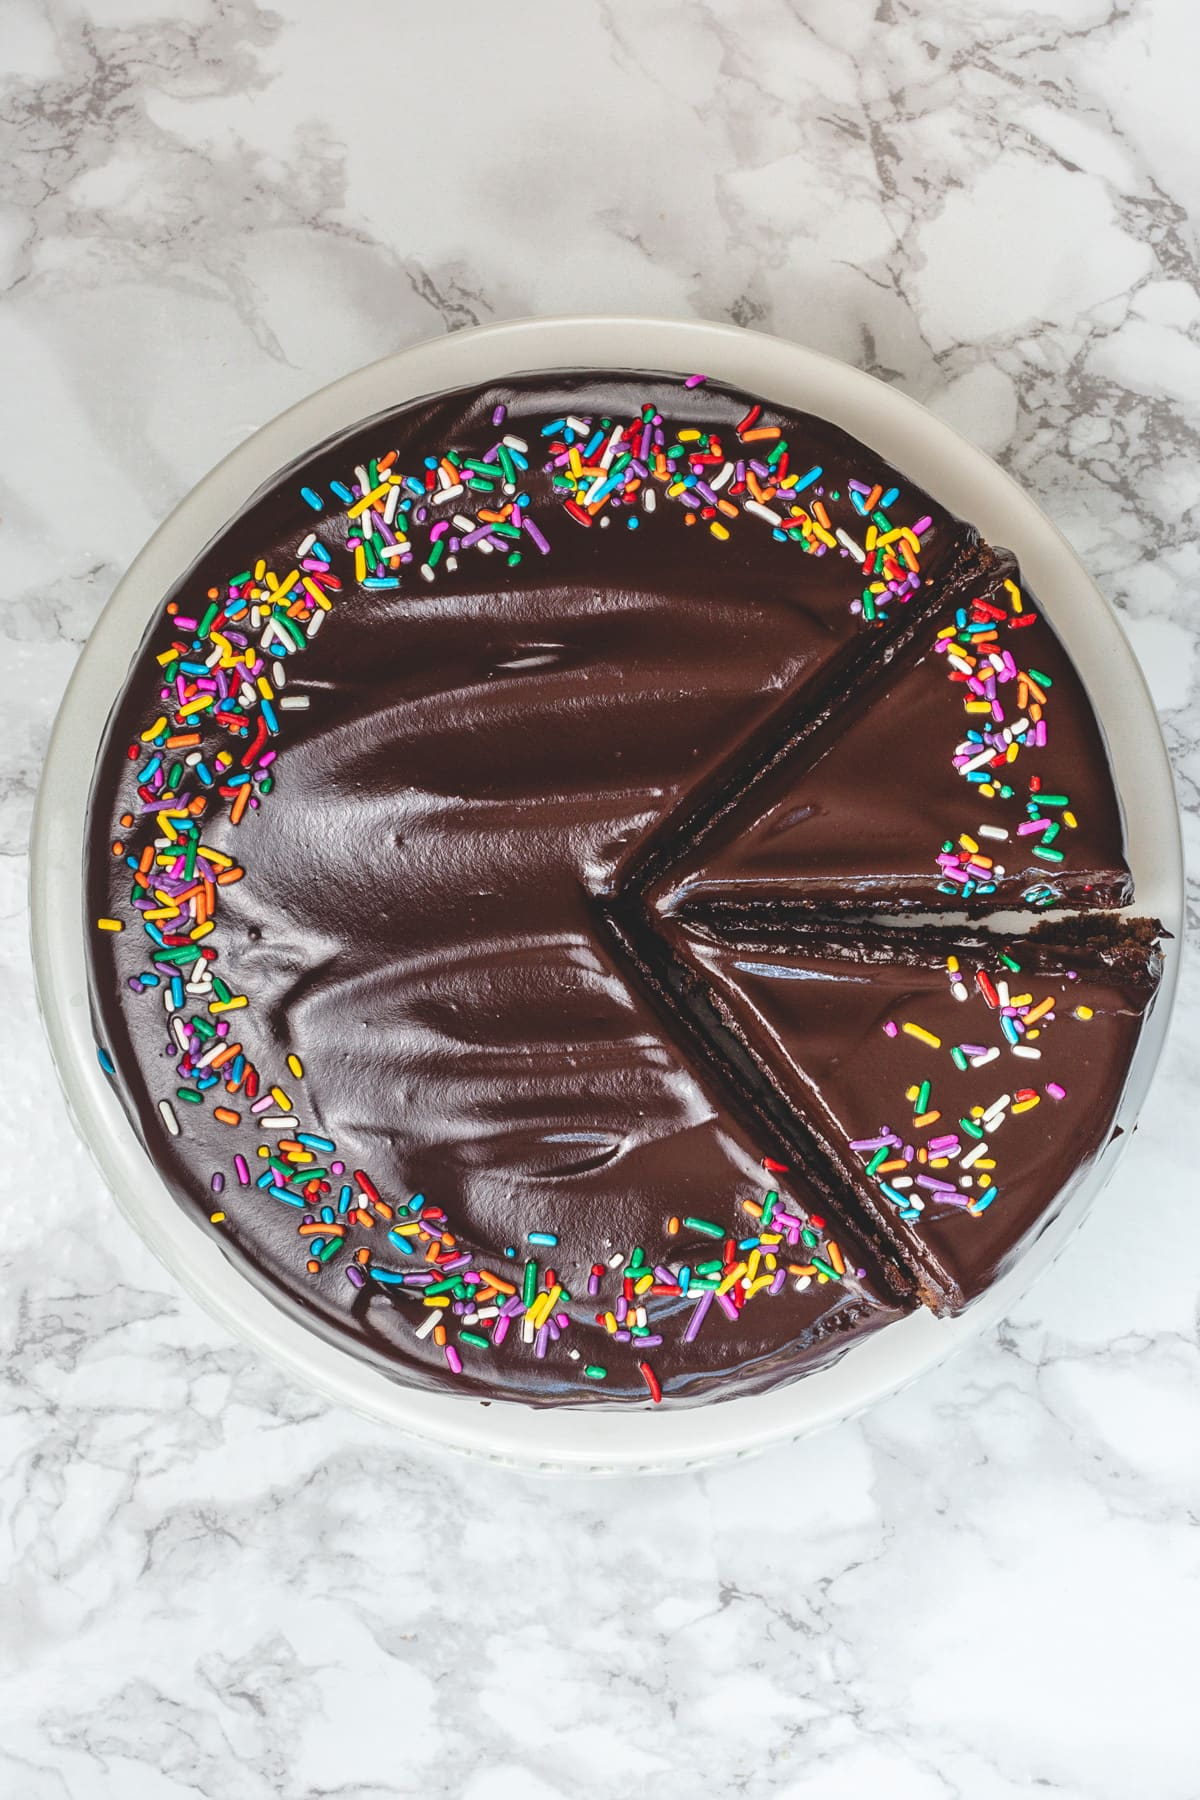 Top view of eggless chocolate cake with two slices on a cake stand.